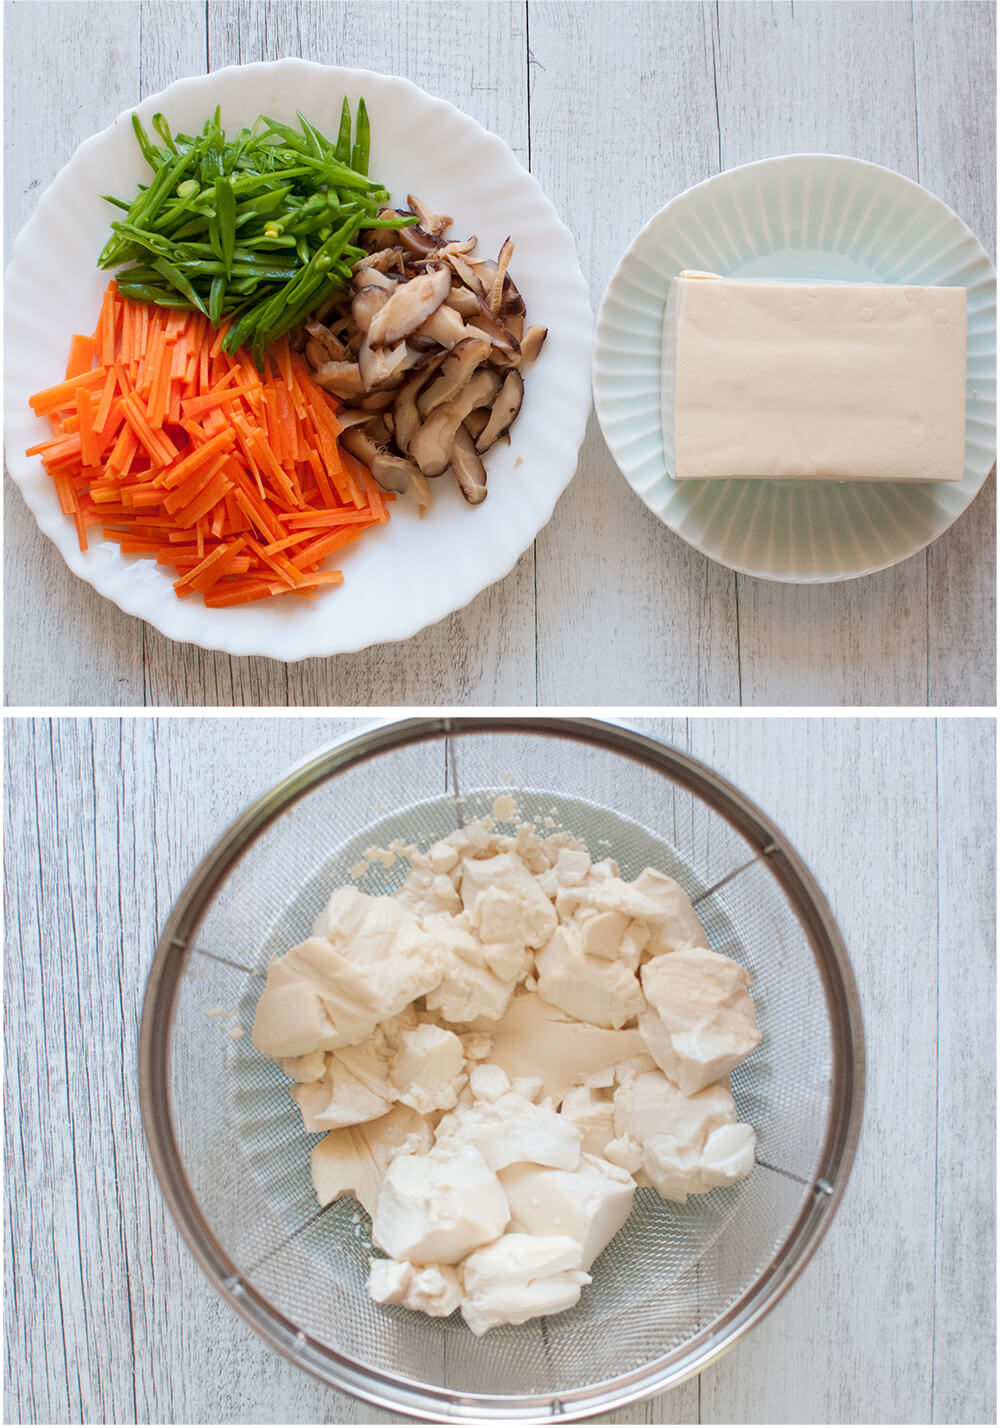 Scrambled Tofu is a delicious vegetarian side dish. Or perhaps you could call it a warm salad. It is a typical home cooking dish and quite simple to make.